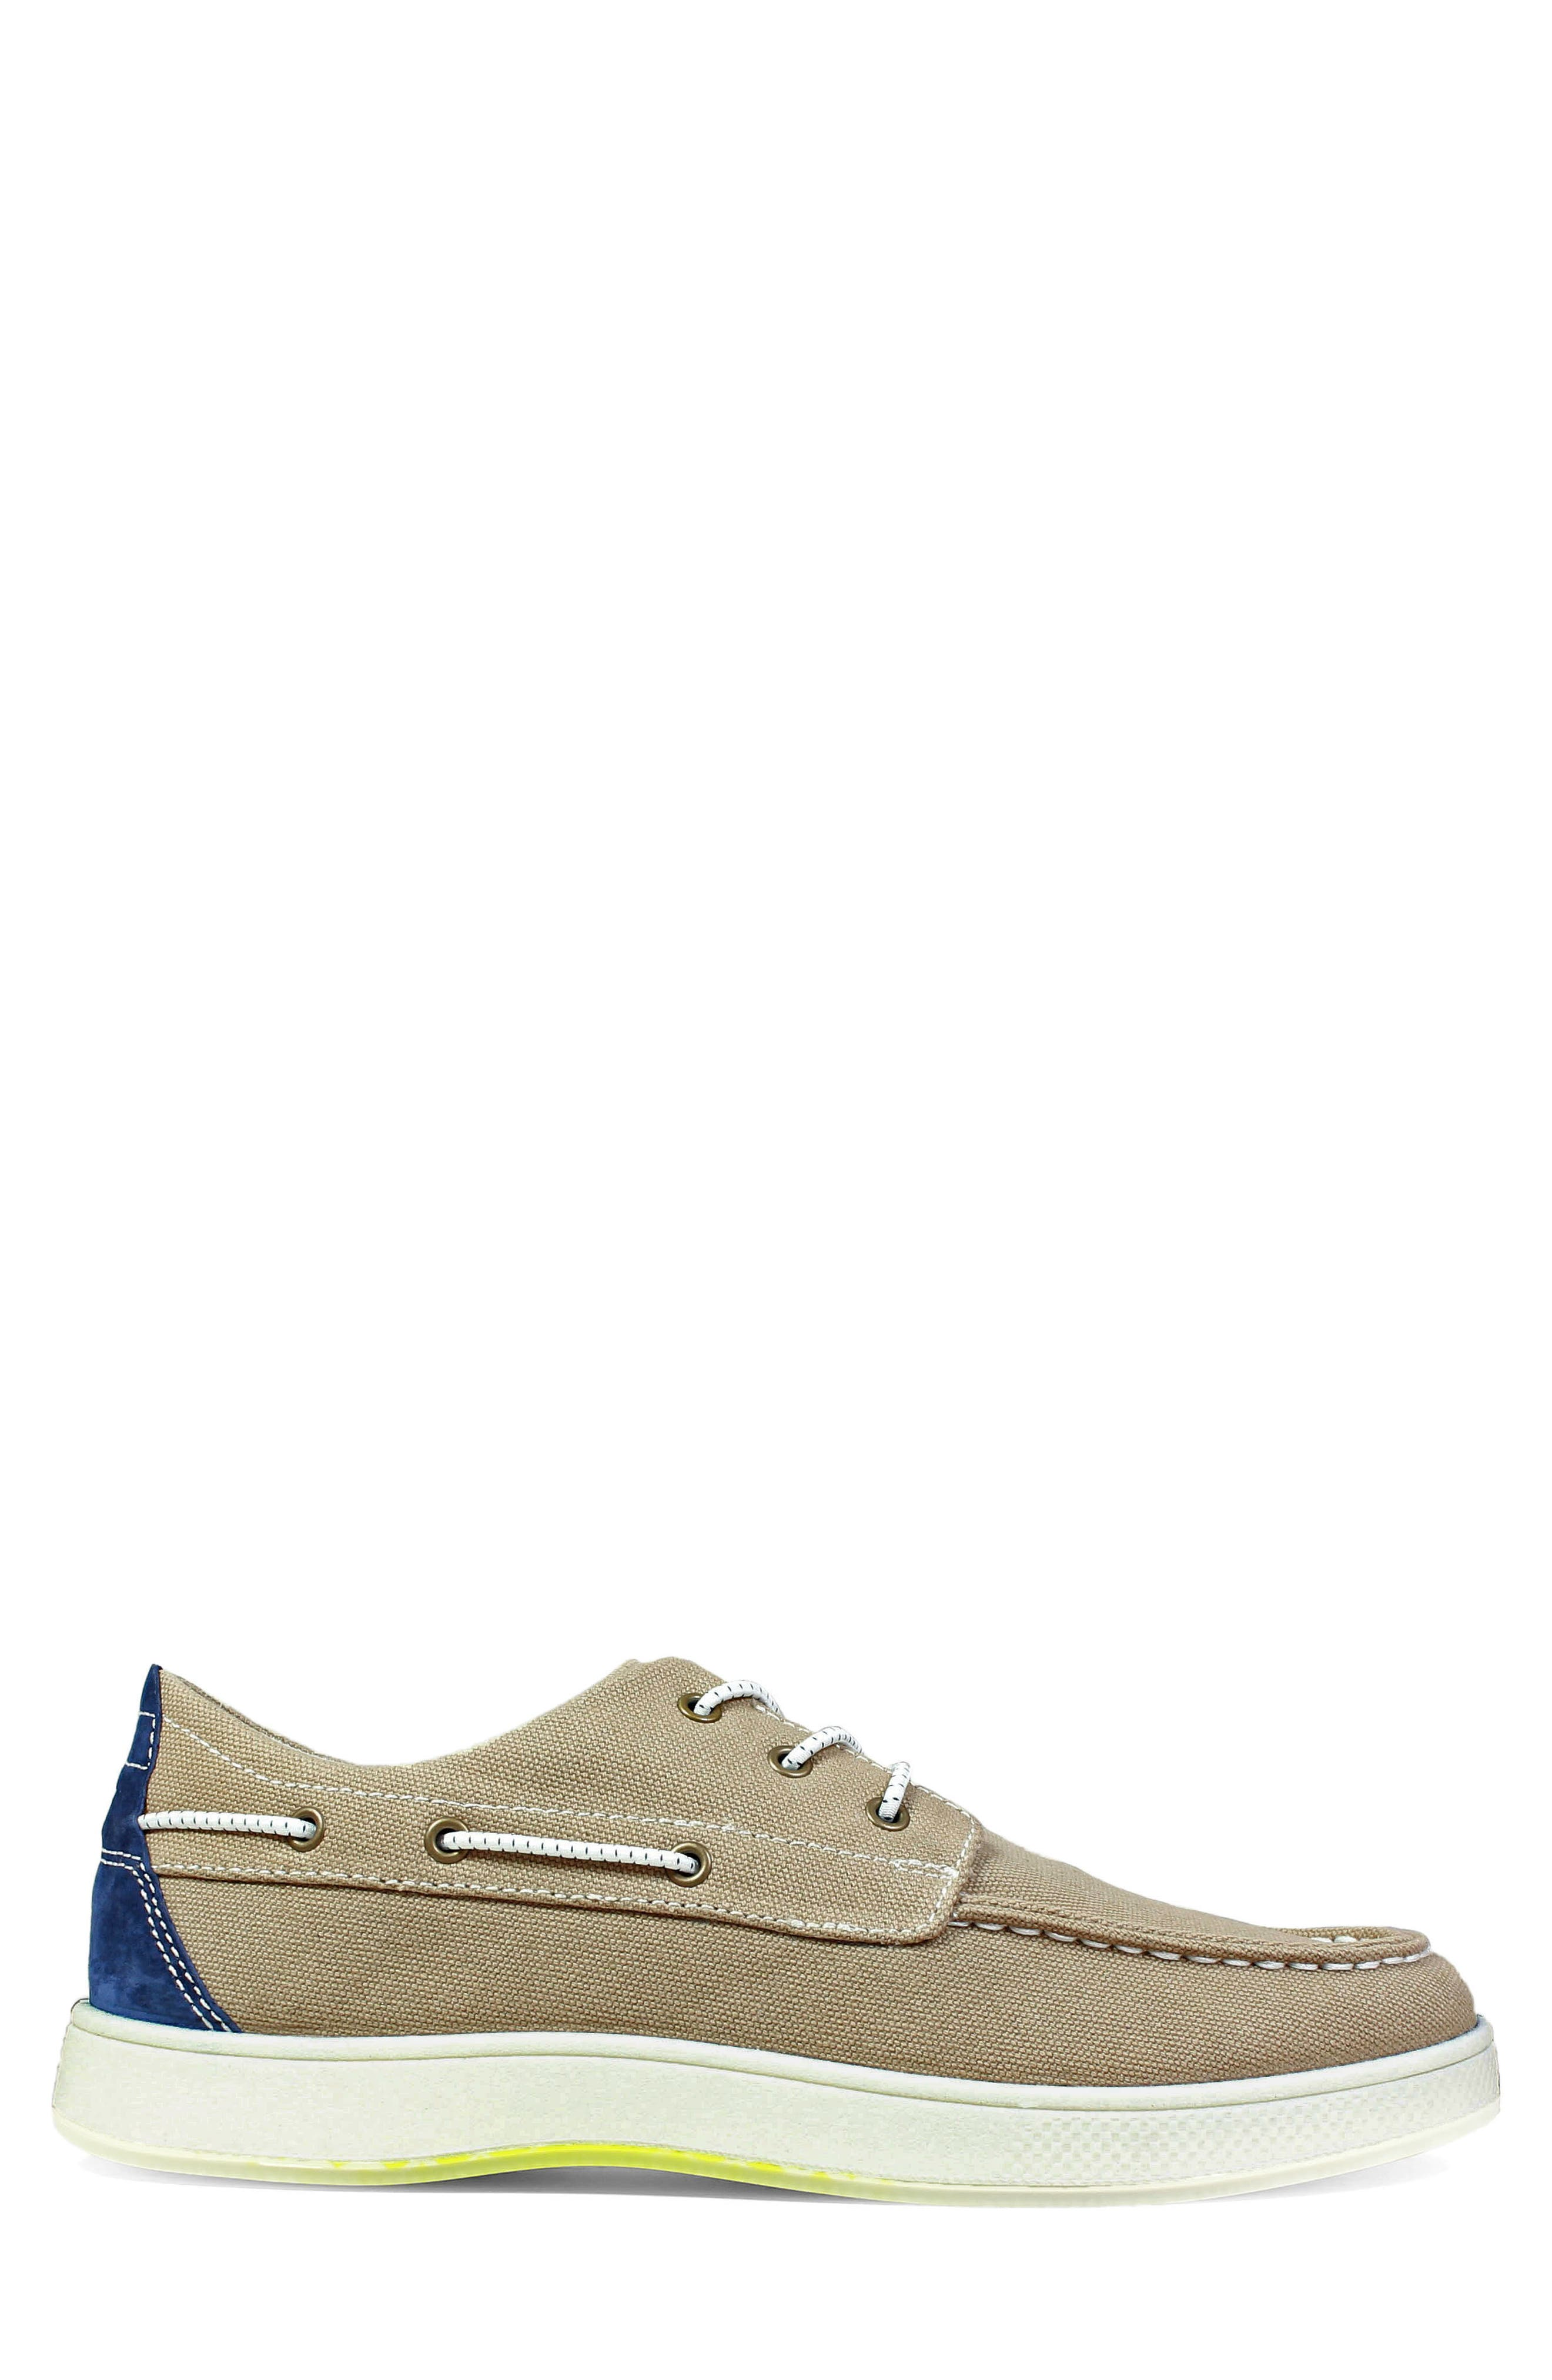 FLORSHEIM,                             Edge Boat Shoe,                             Alternate thumbnail 3, color,                             KHAKI CANVAS